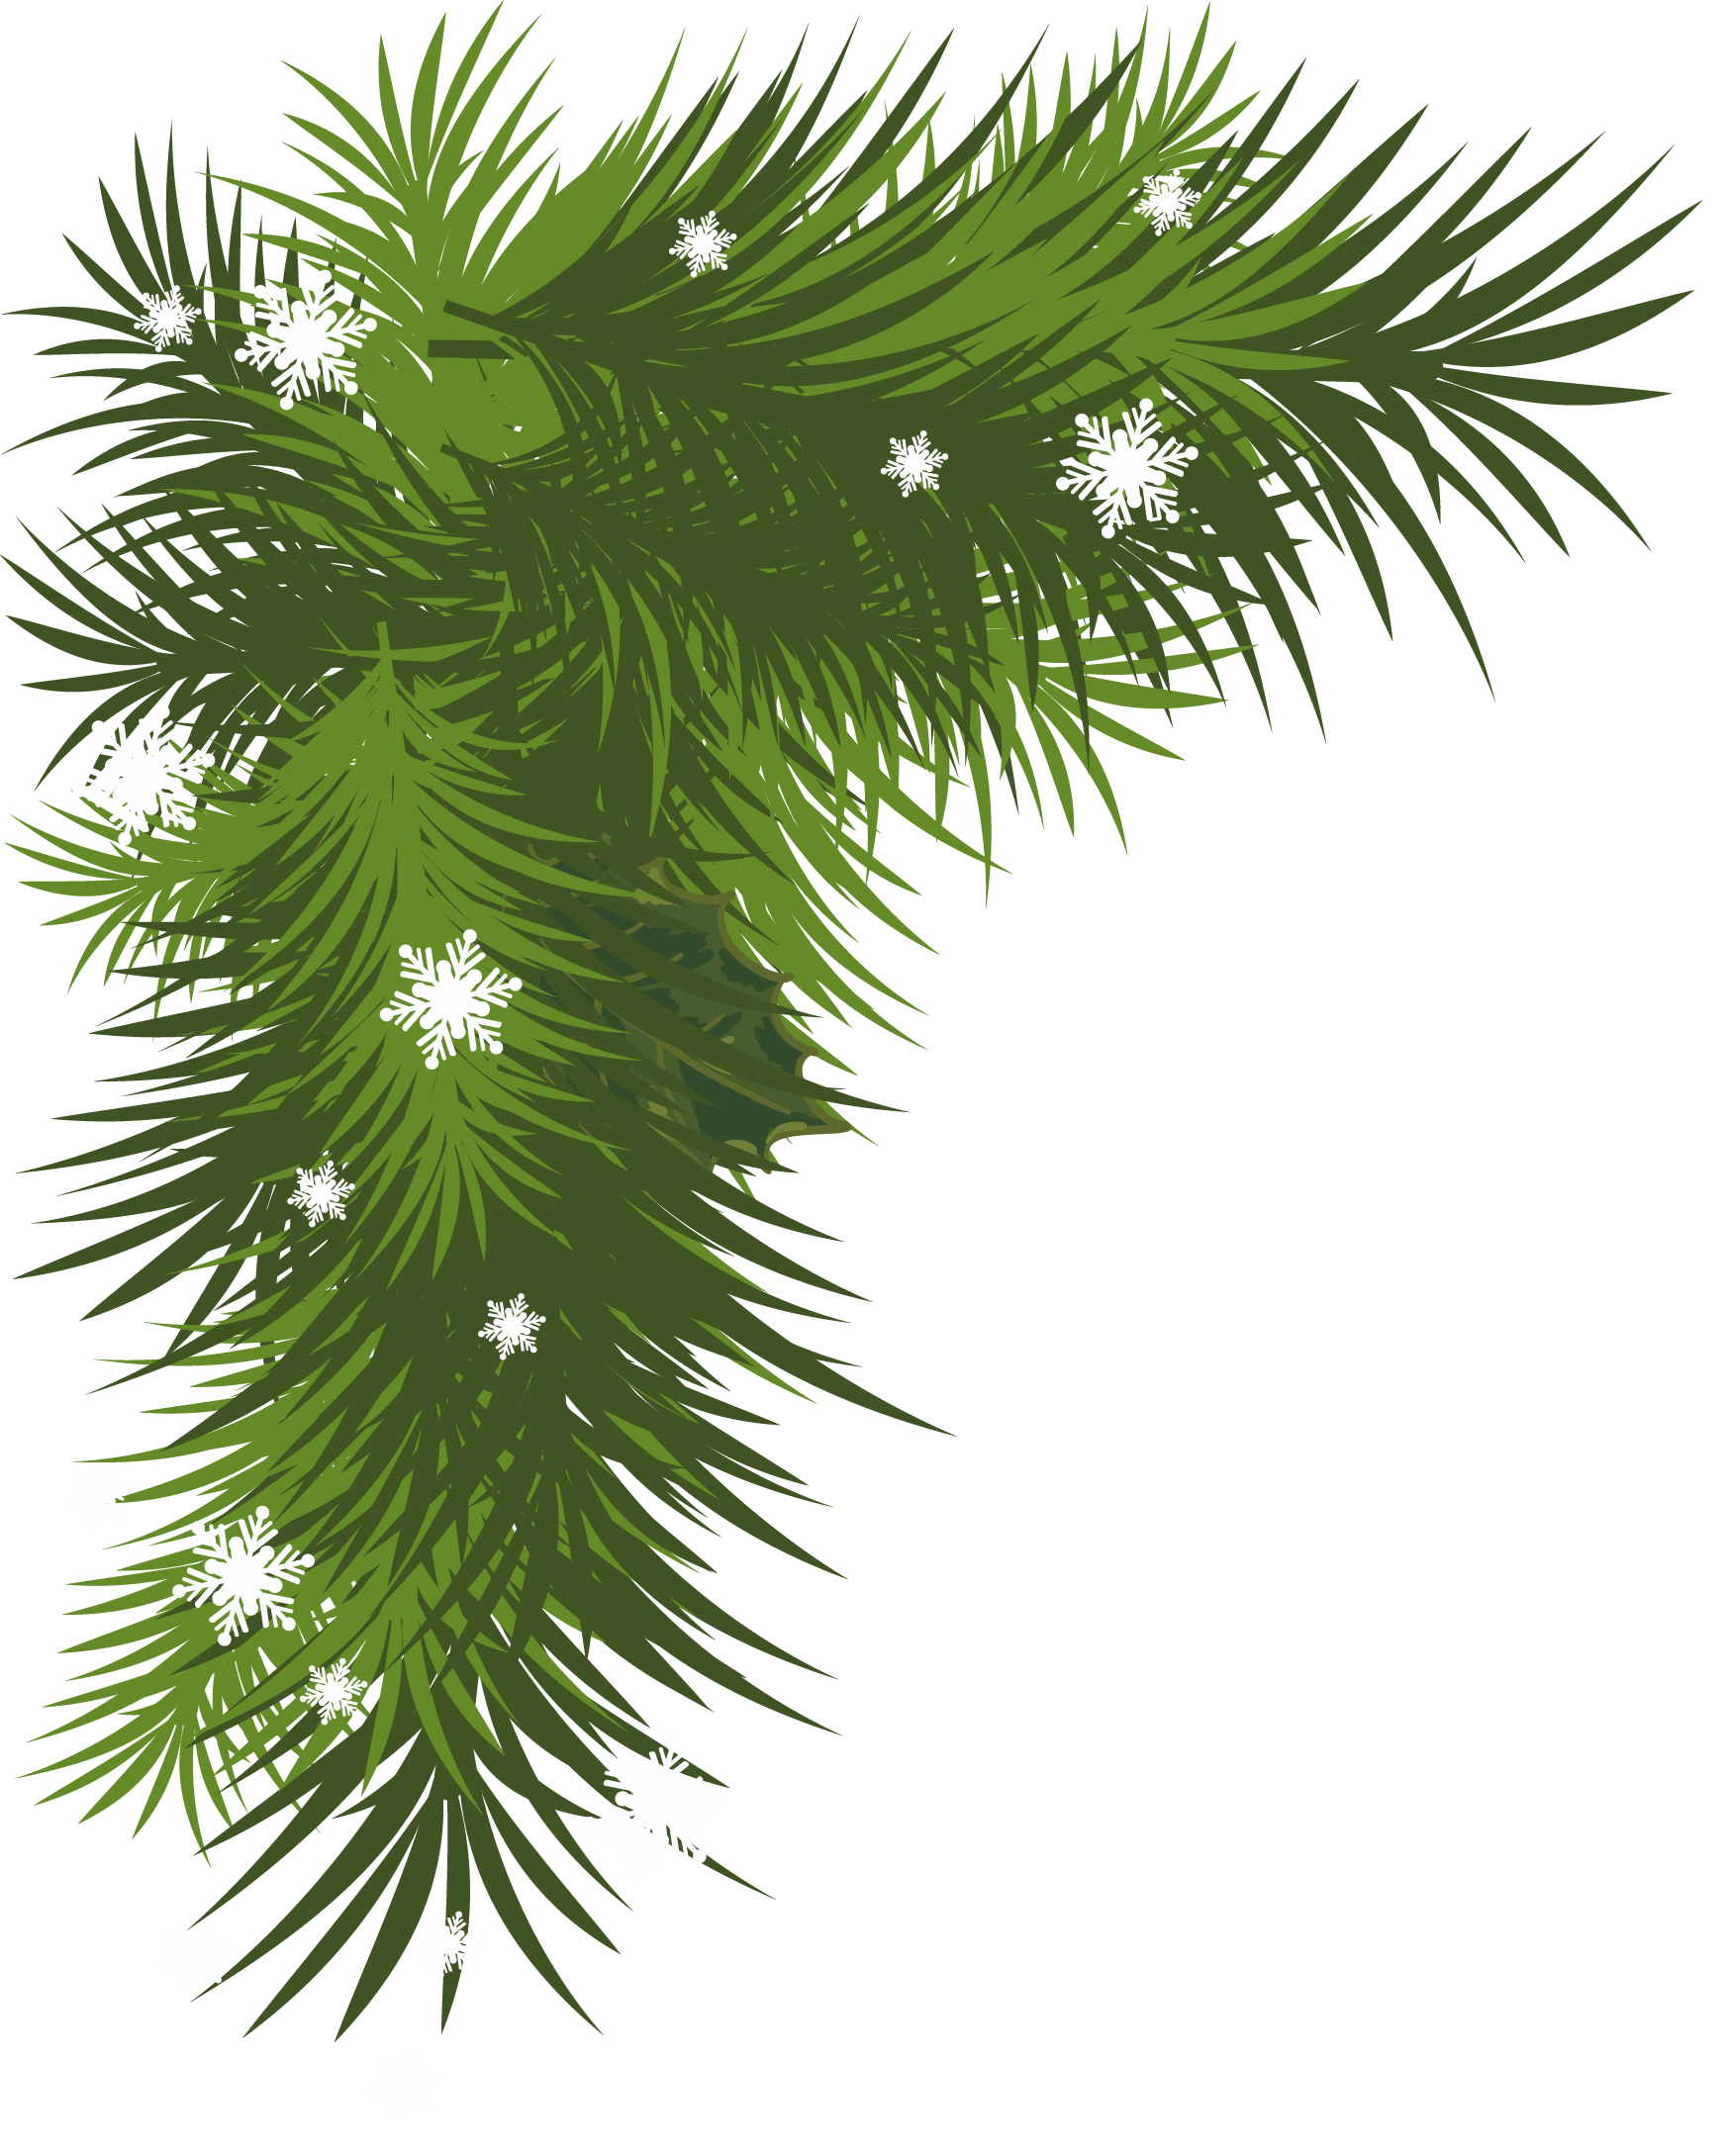 Pine tree branch clipart vector black and white stock Snowy Pine Bough Clipart vector black and white stock